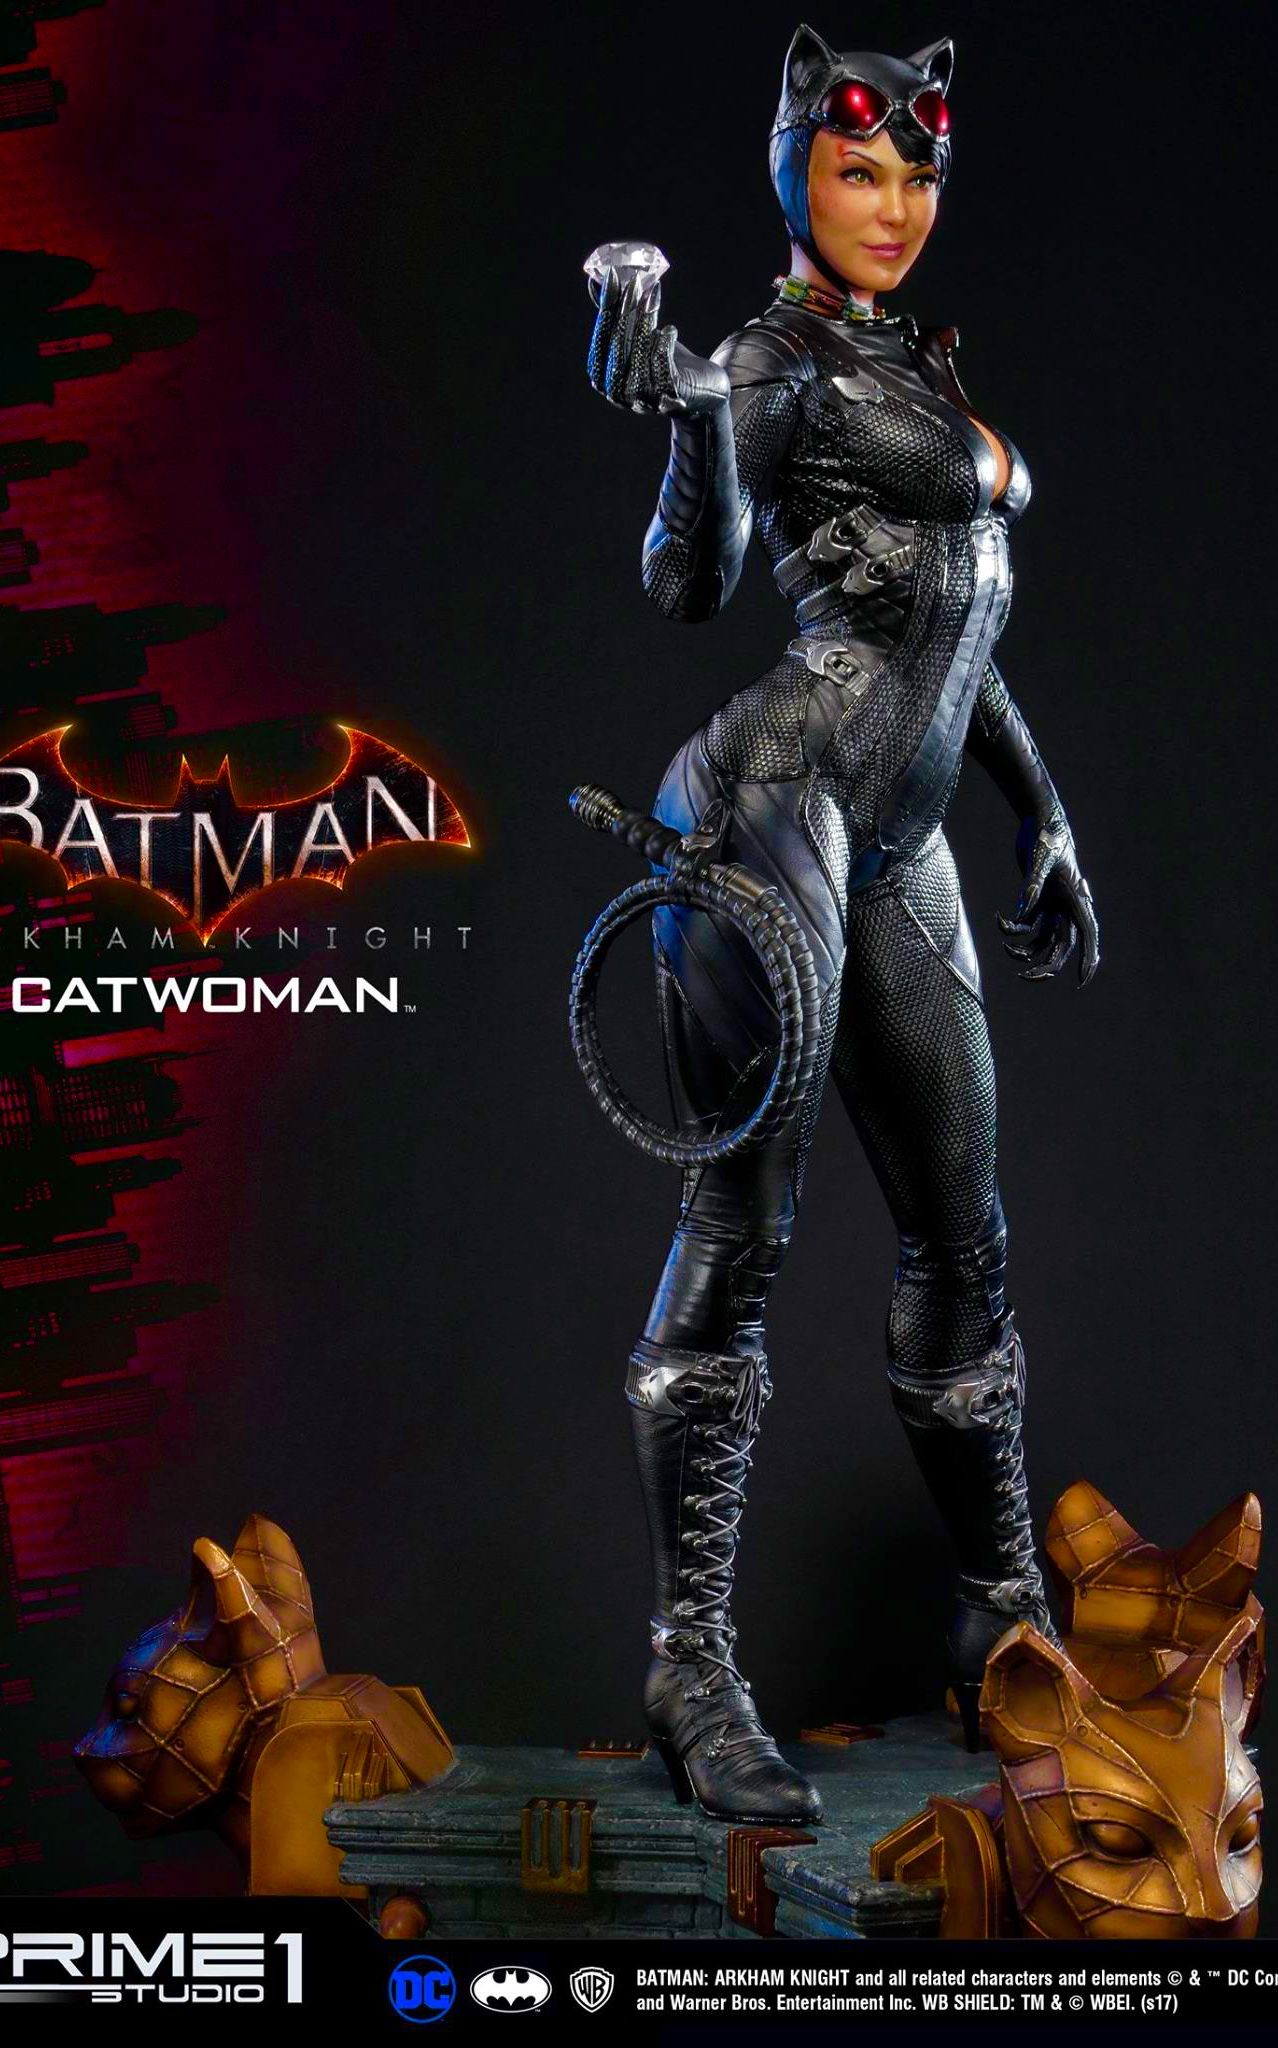 Pin by Nardydude on Character Statues Catwoman